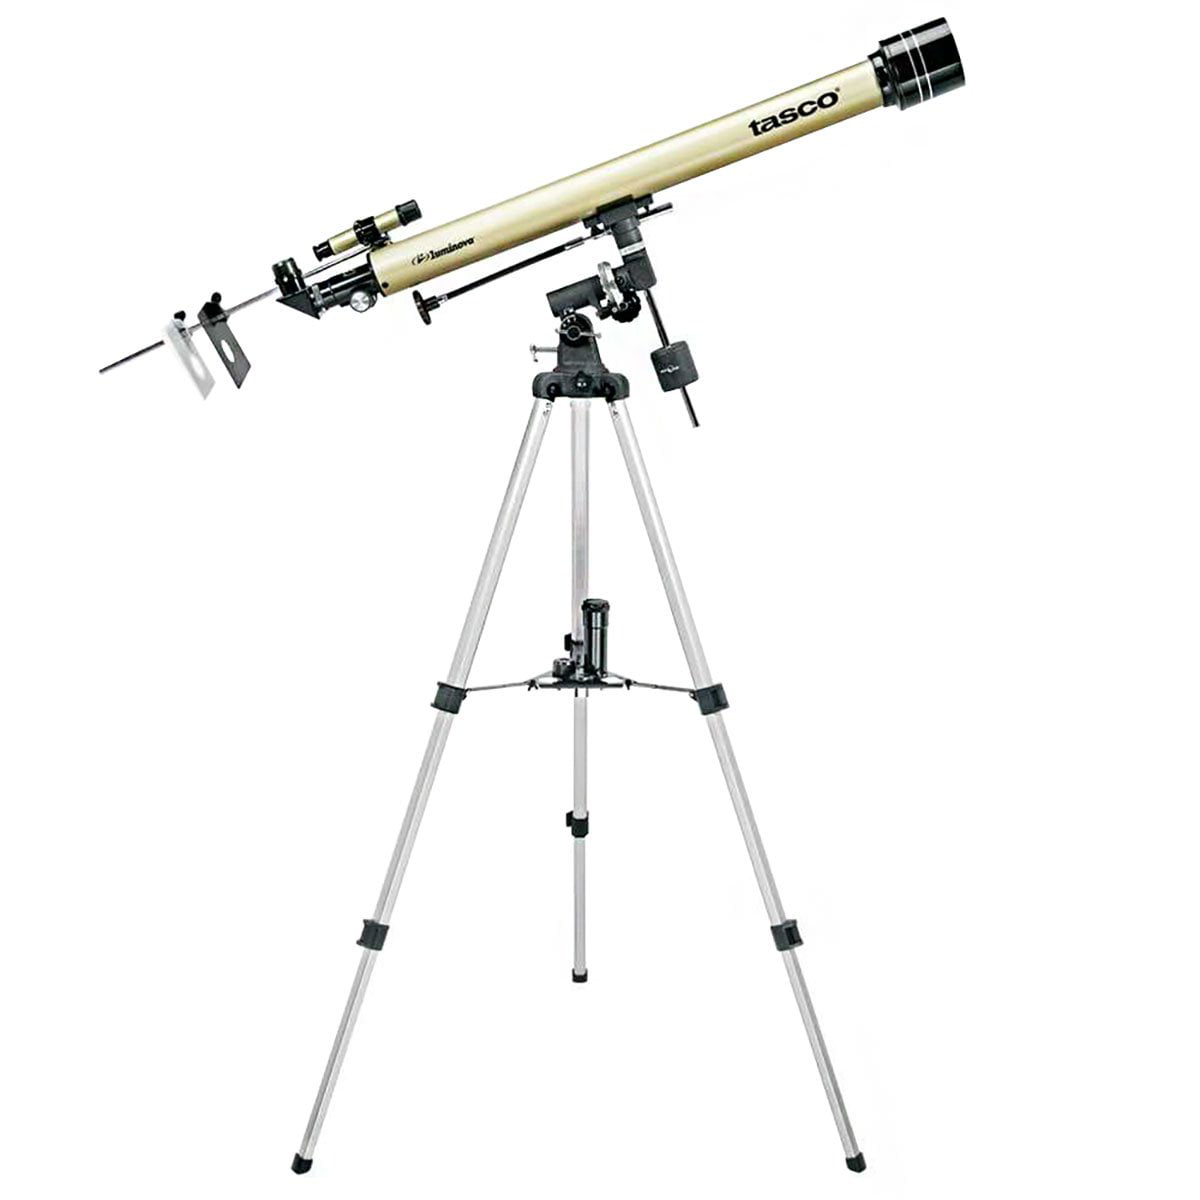 Tasco Luminova 60x 900mm Refractor Telescope w  Tripod (Certified Refurbished) by Tasco